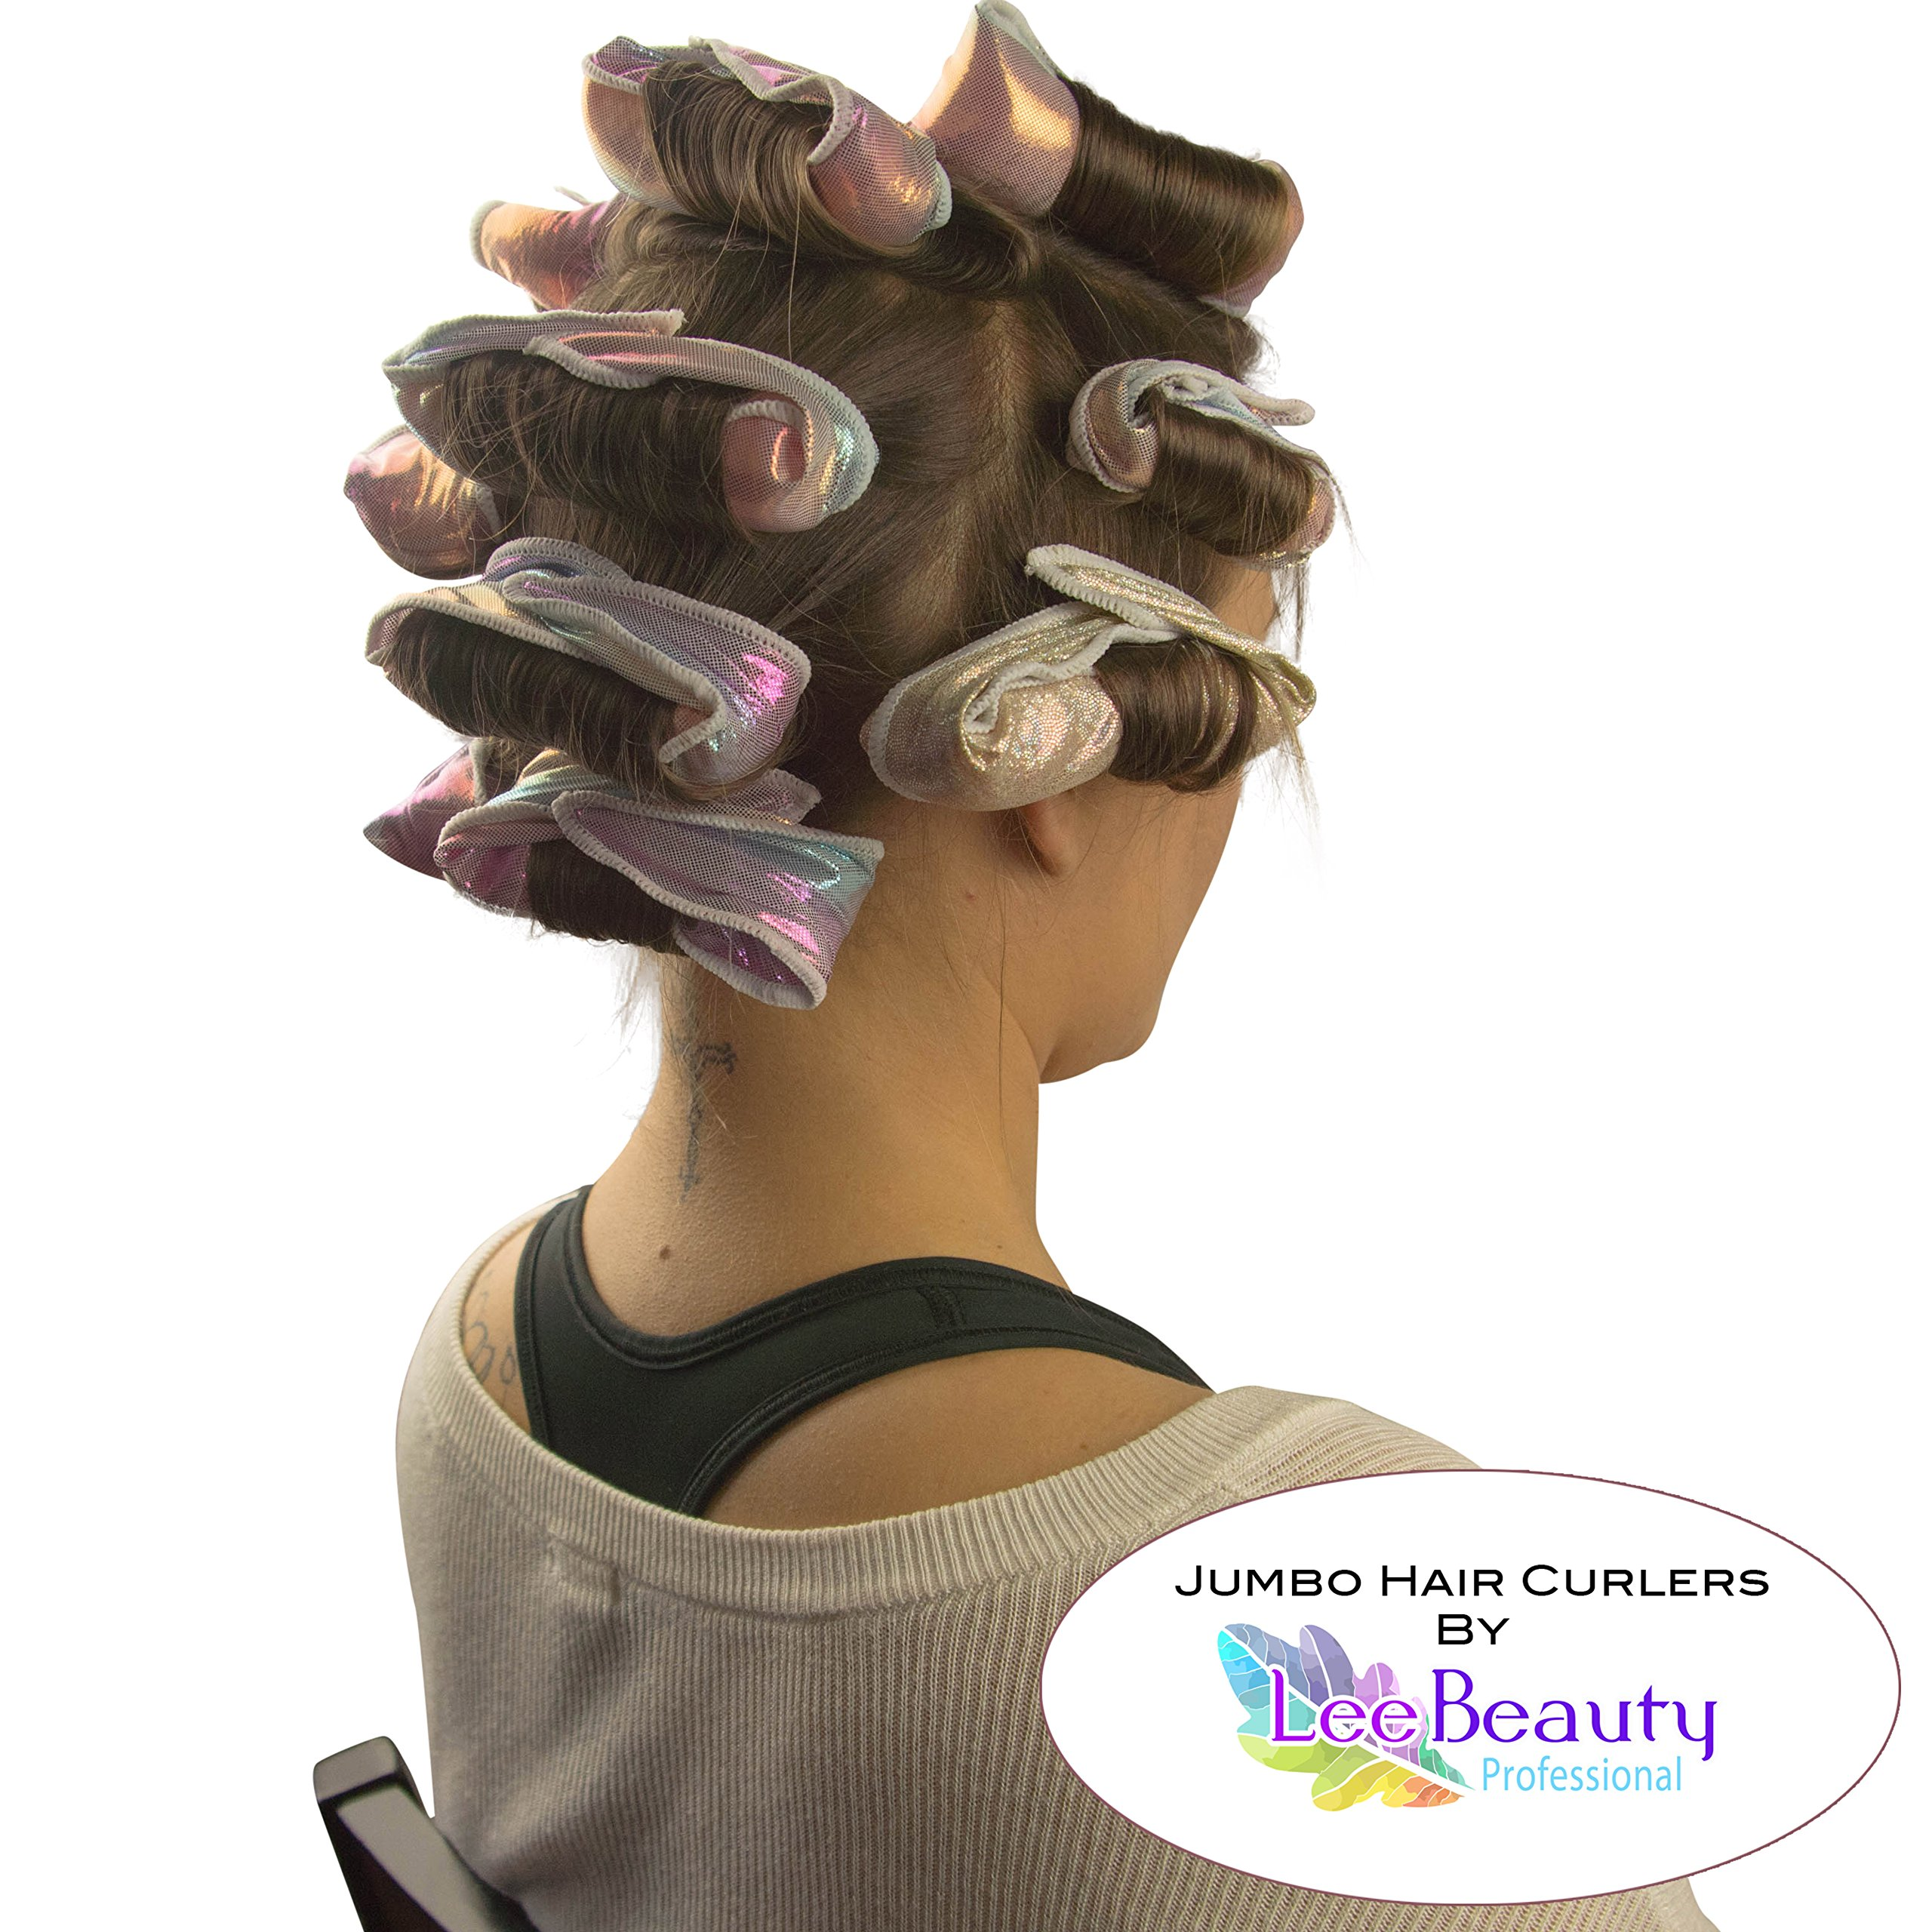 Jumbo over night hair curlers for large curls in when you wake up in the morning, Revolutionizing old fashion rods by Lee Beauty Professional (Image #4)